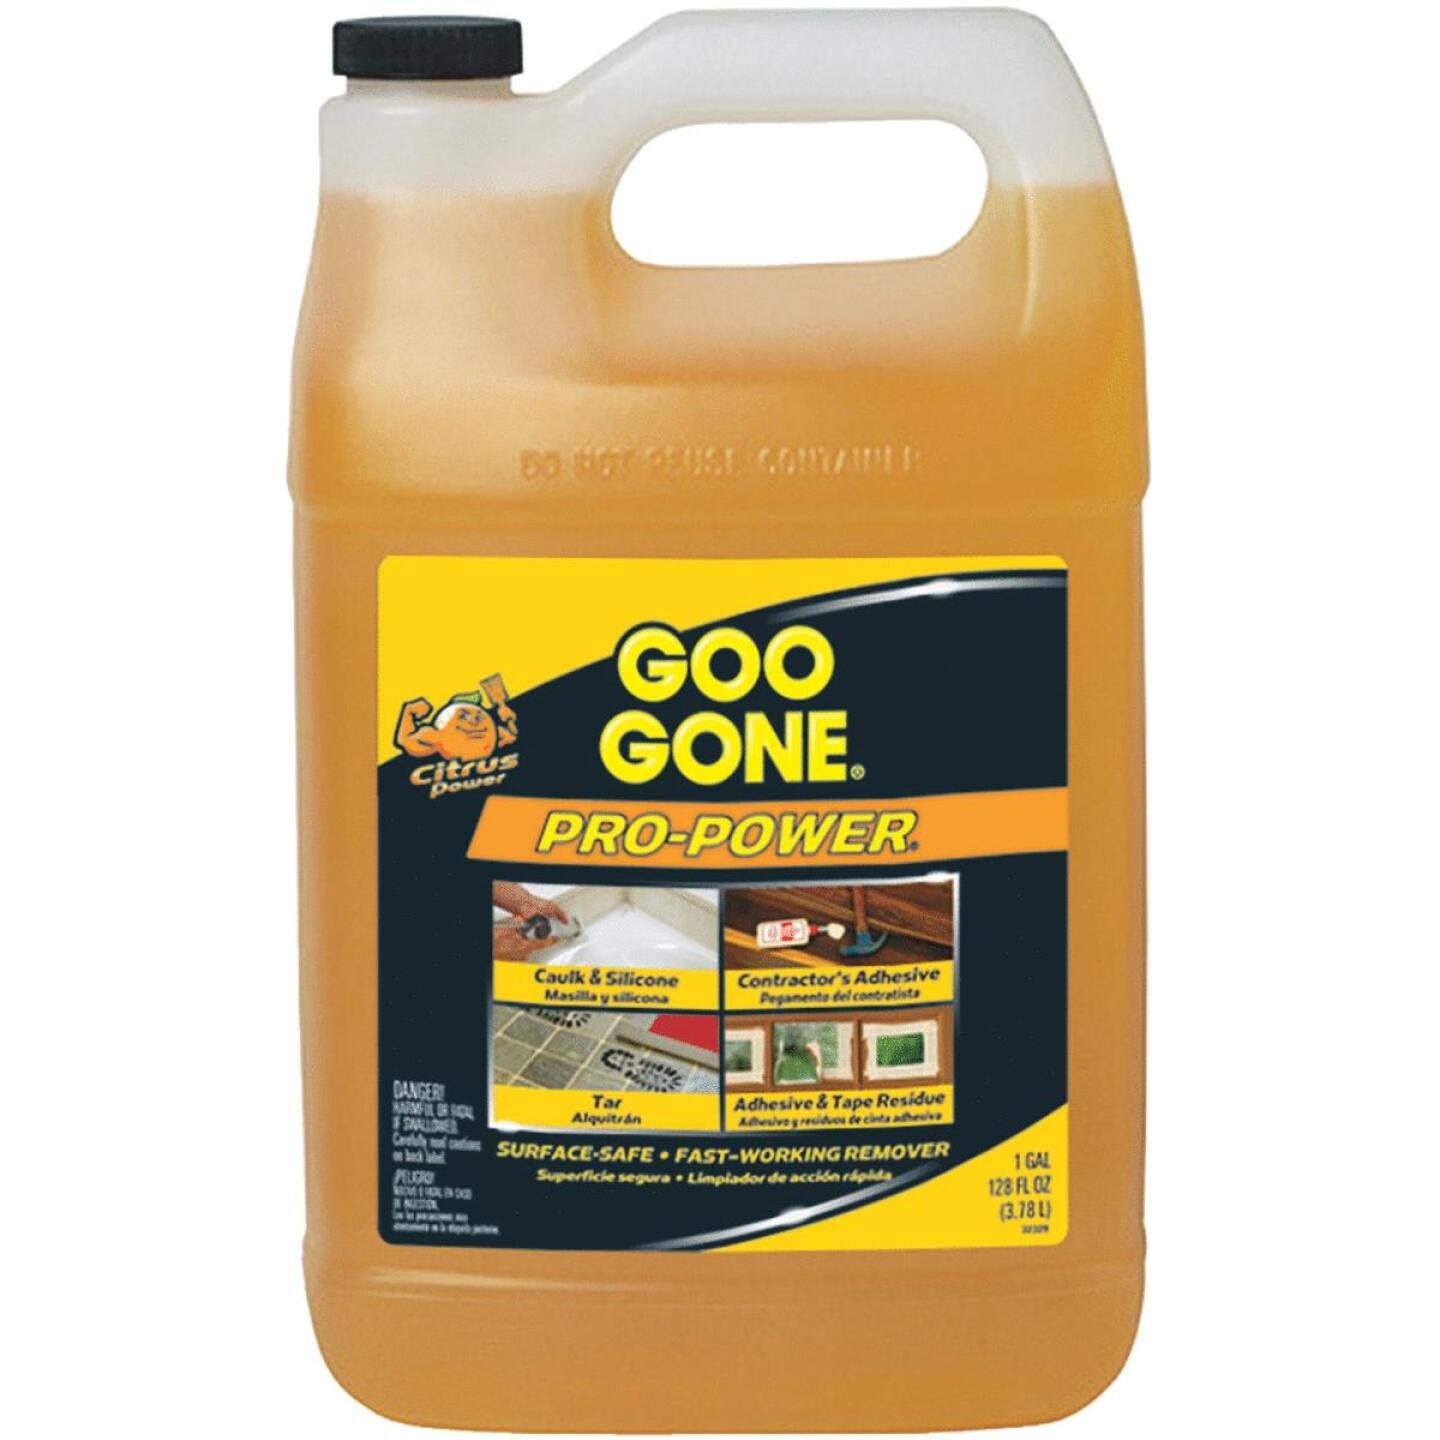 Goo Gone 1 Gal. Pro-Power Adhesive Remover Image 83